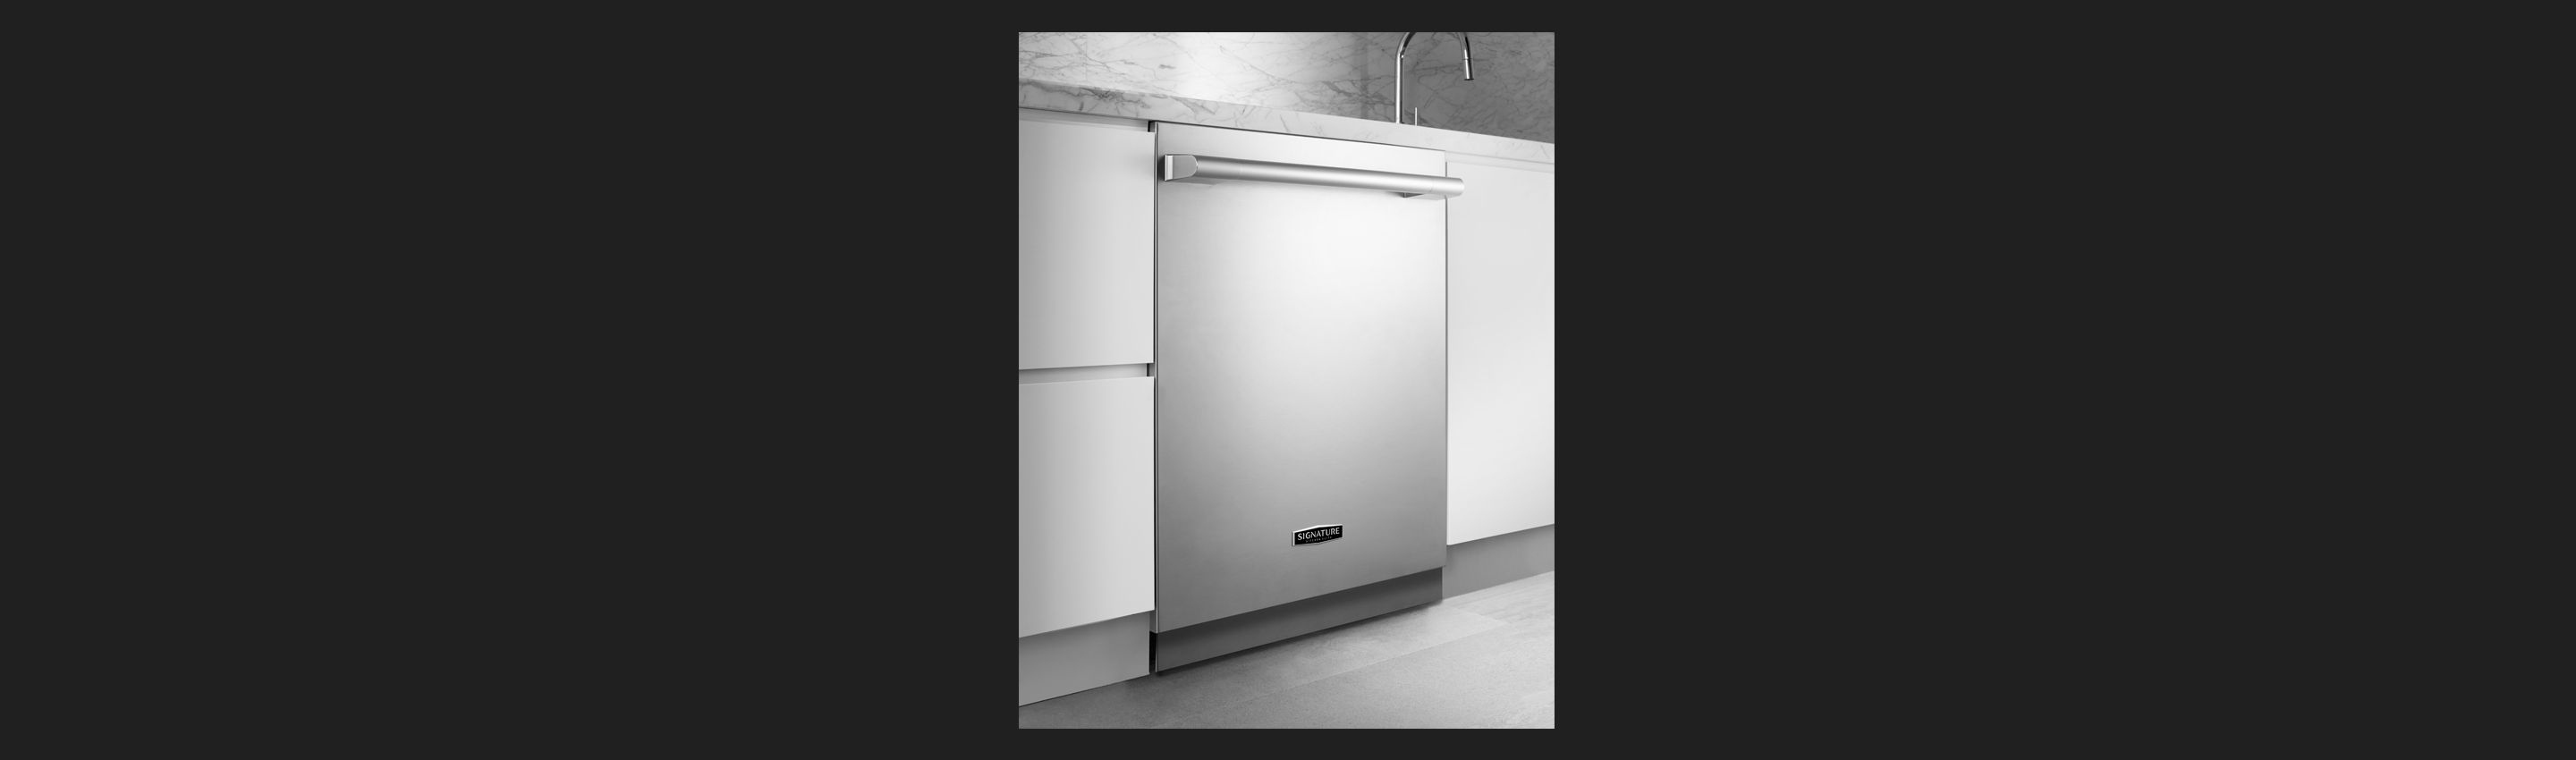 Dishwasher with PowerSteam frrom Signature Kitchen Suite